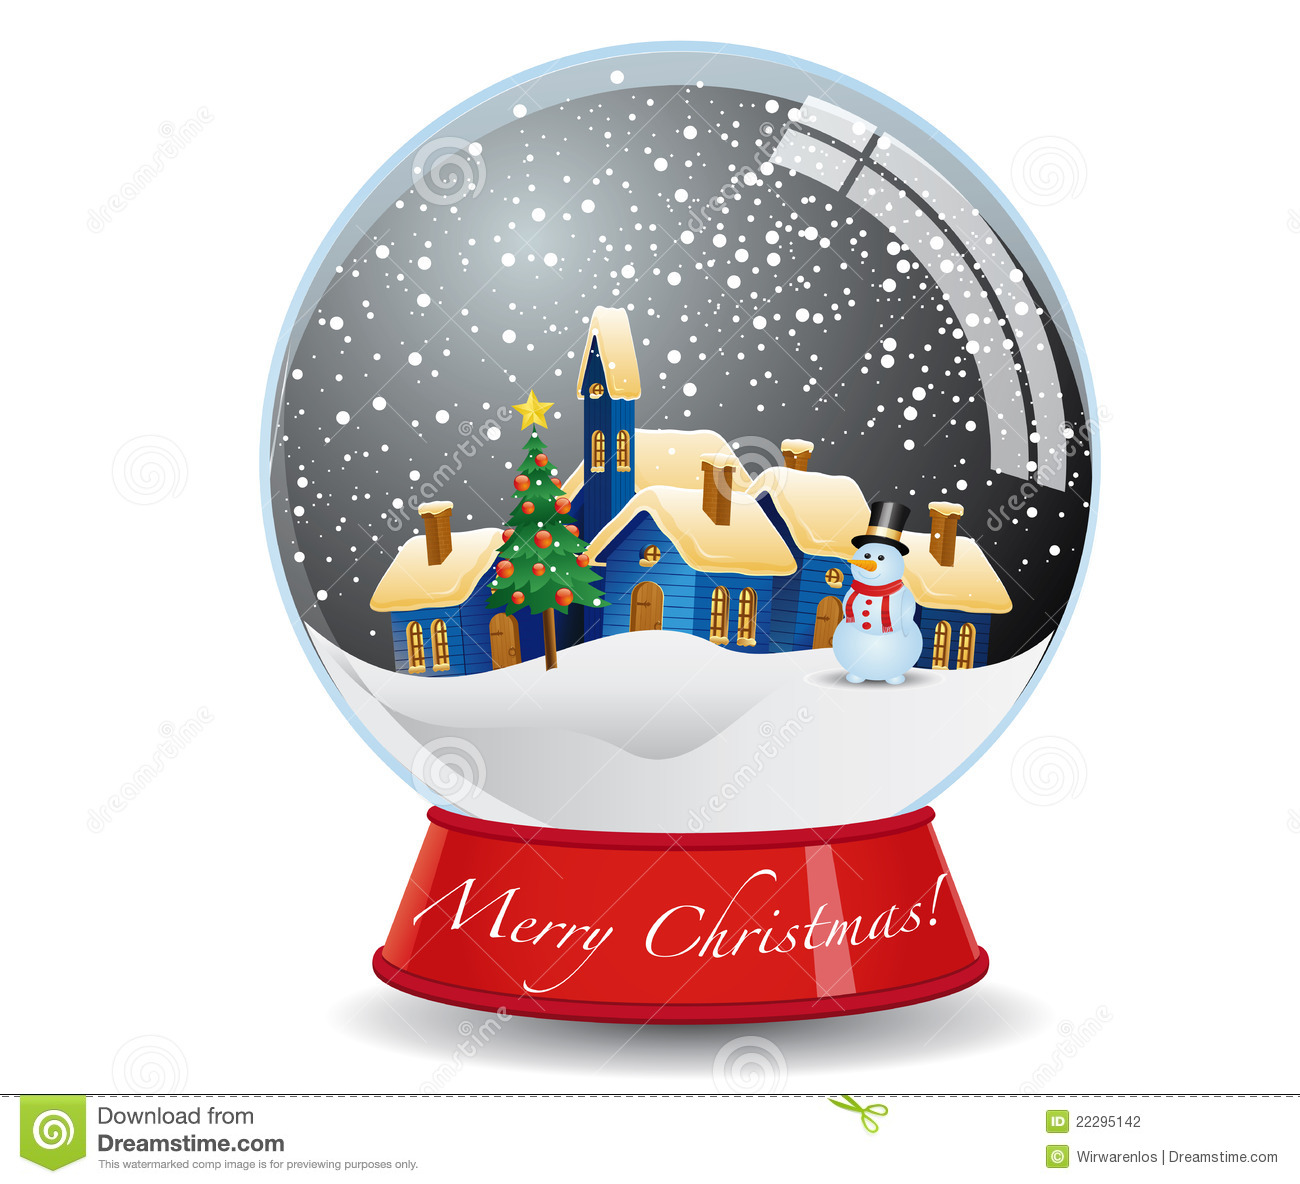 Christmas Snow Globe Stock Vector Illustration Of Holiday